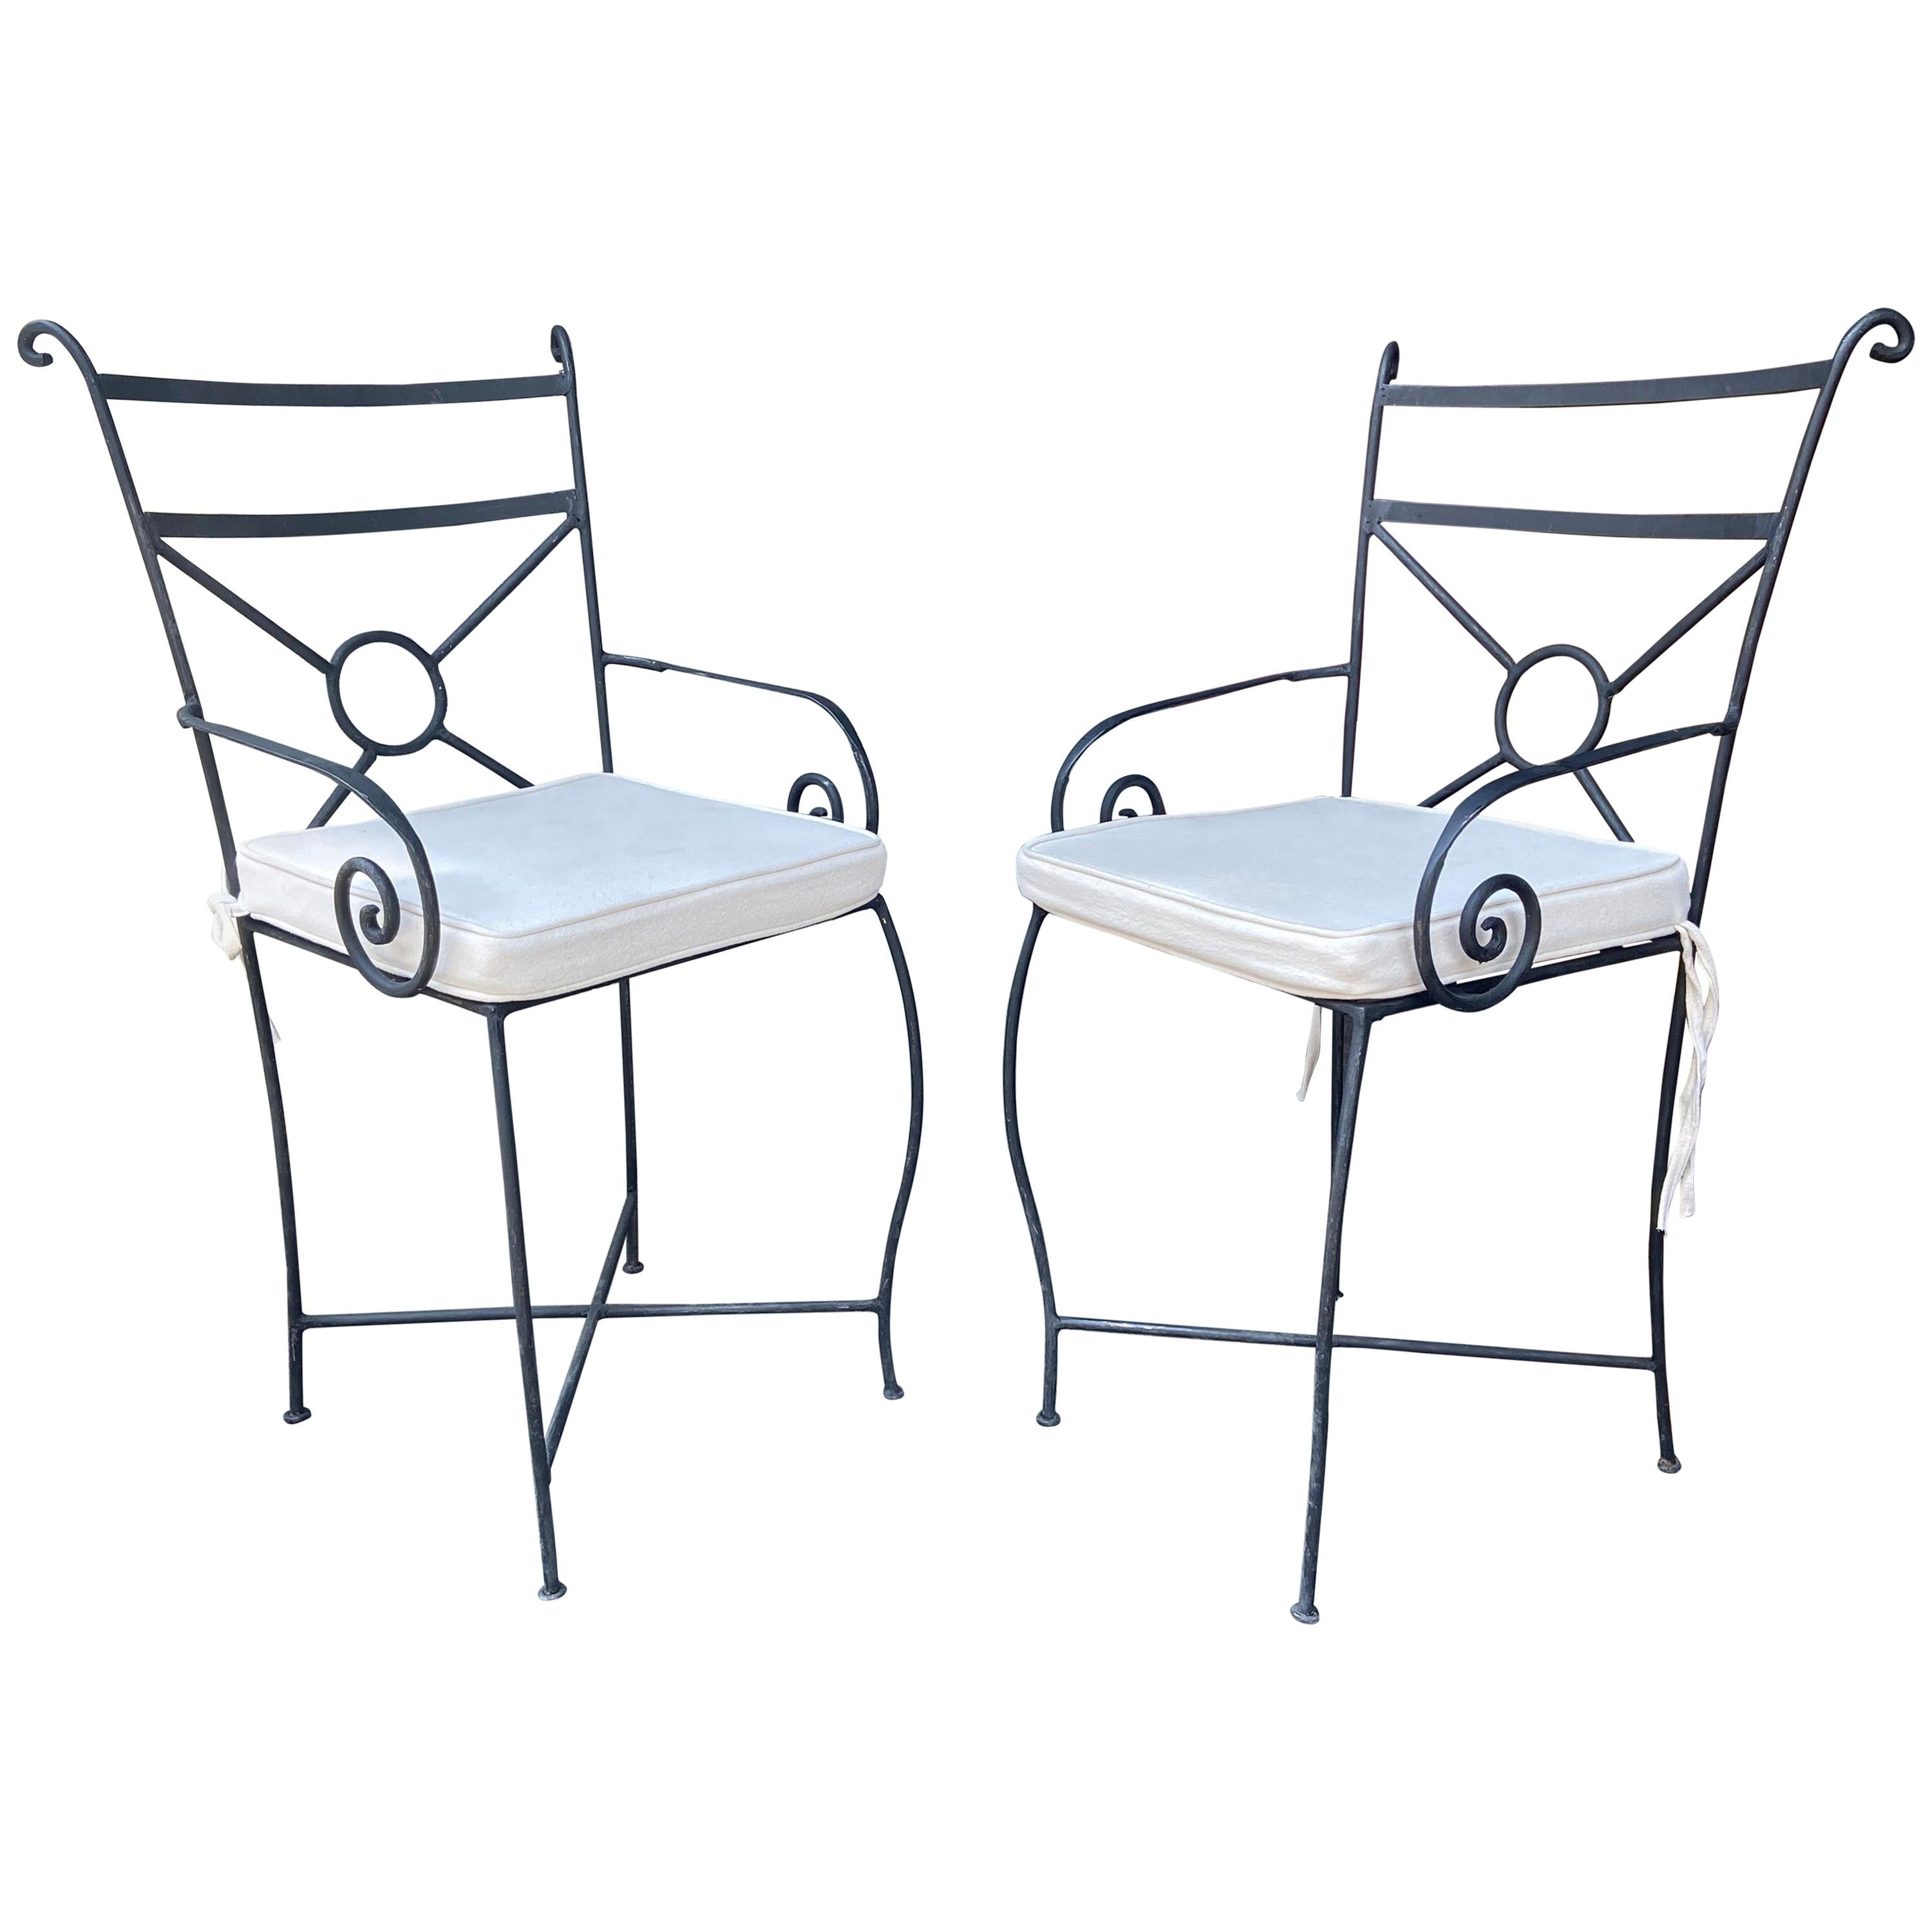 Pair of Vintage Black Garden Handcrafted Wrought Iron Chairs, Morocco